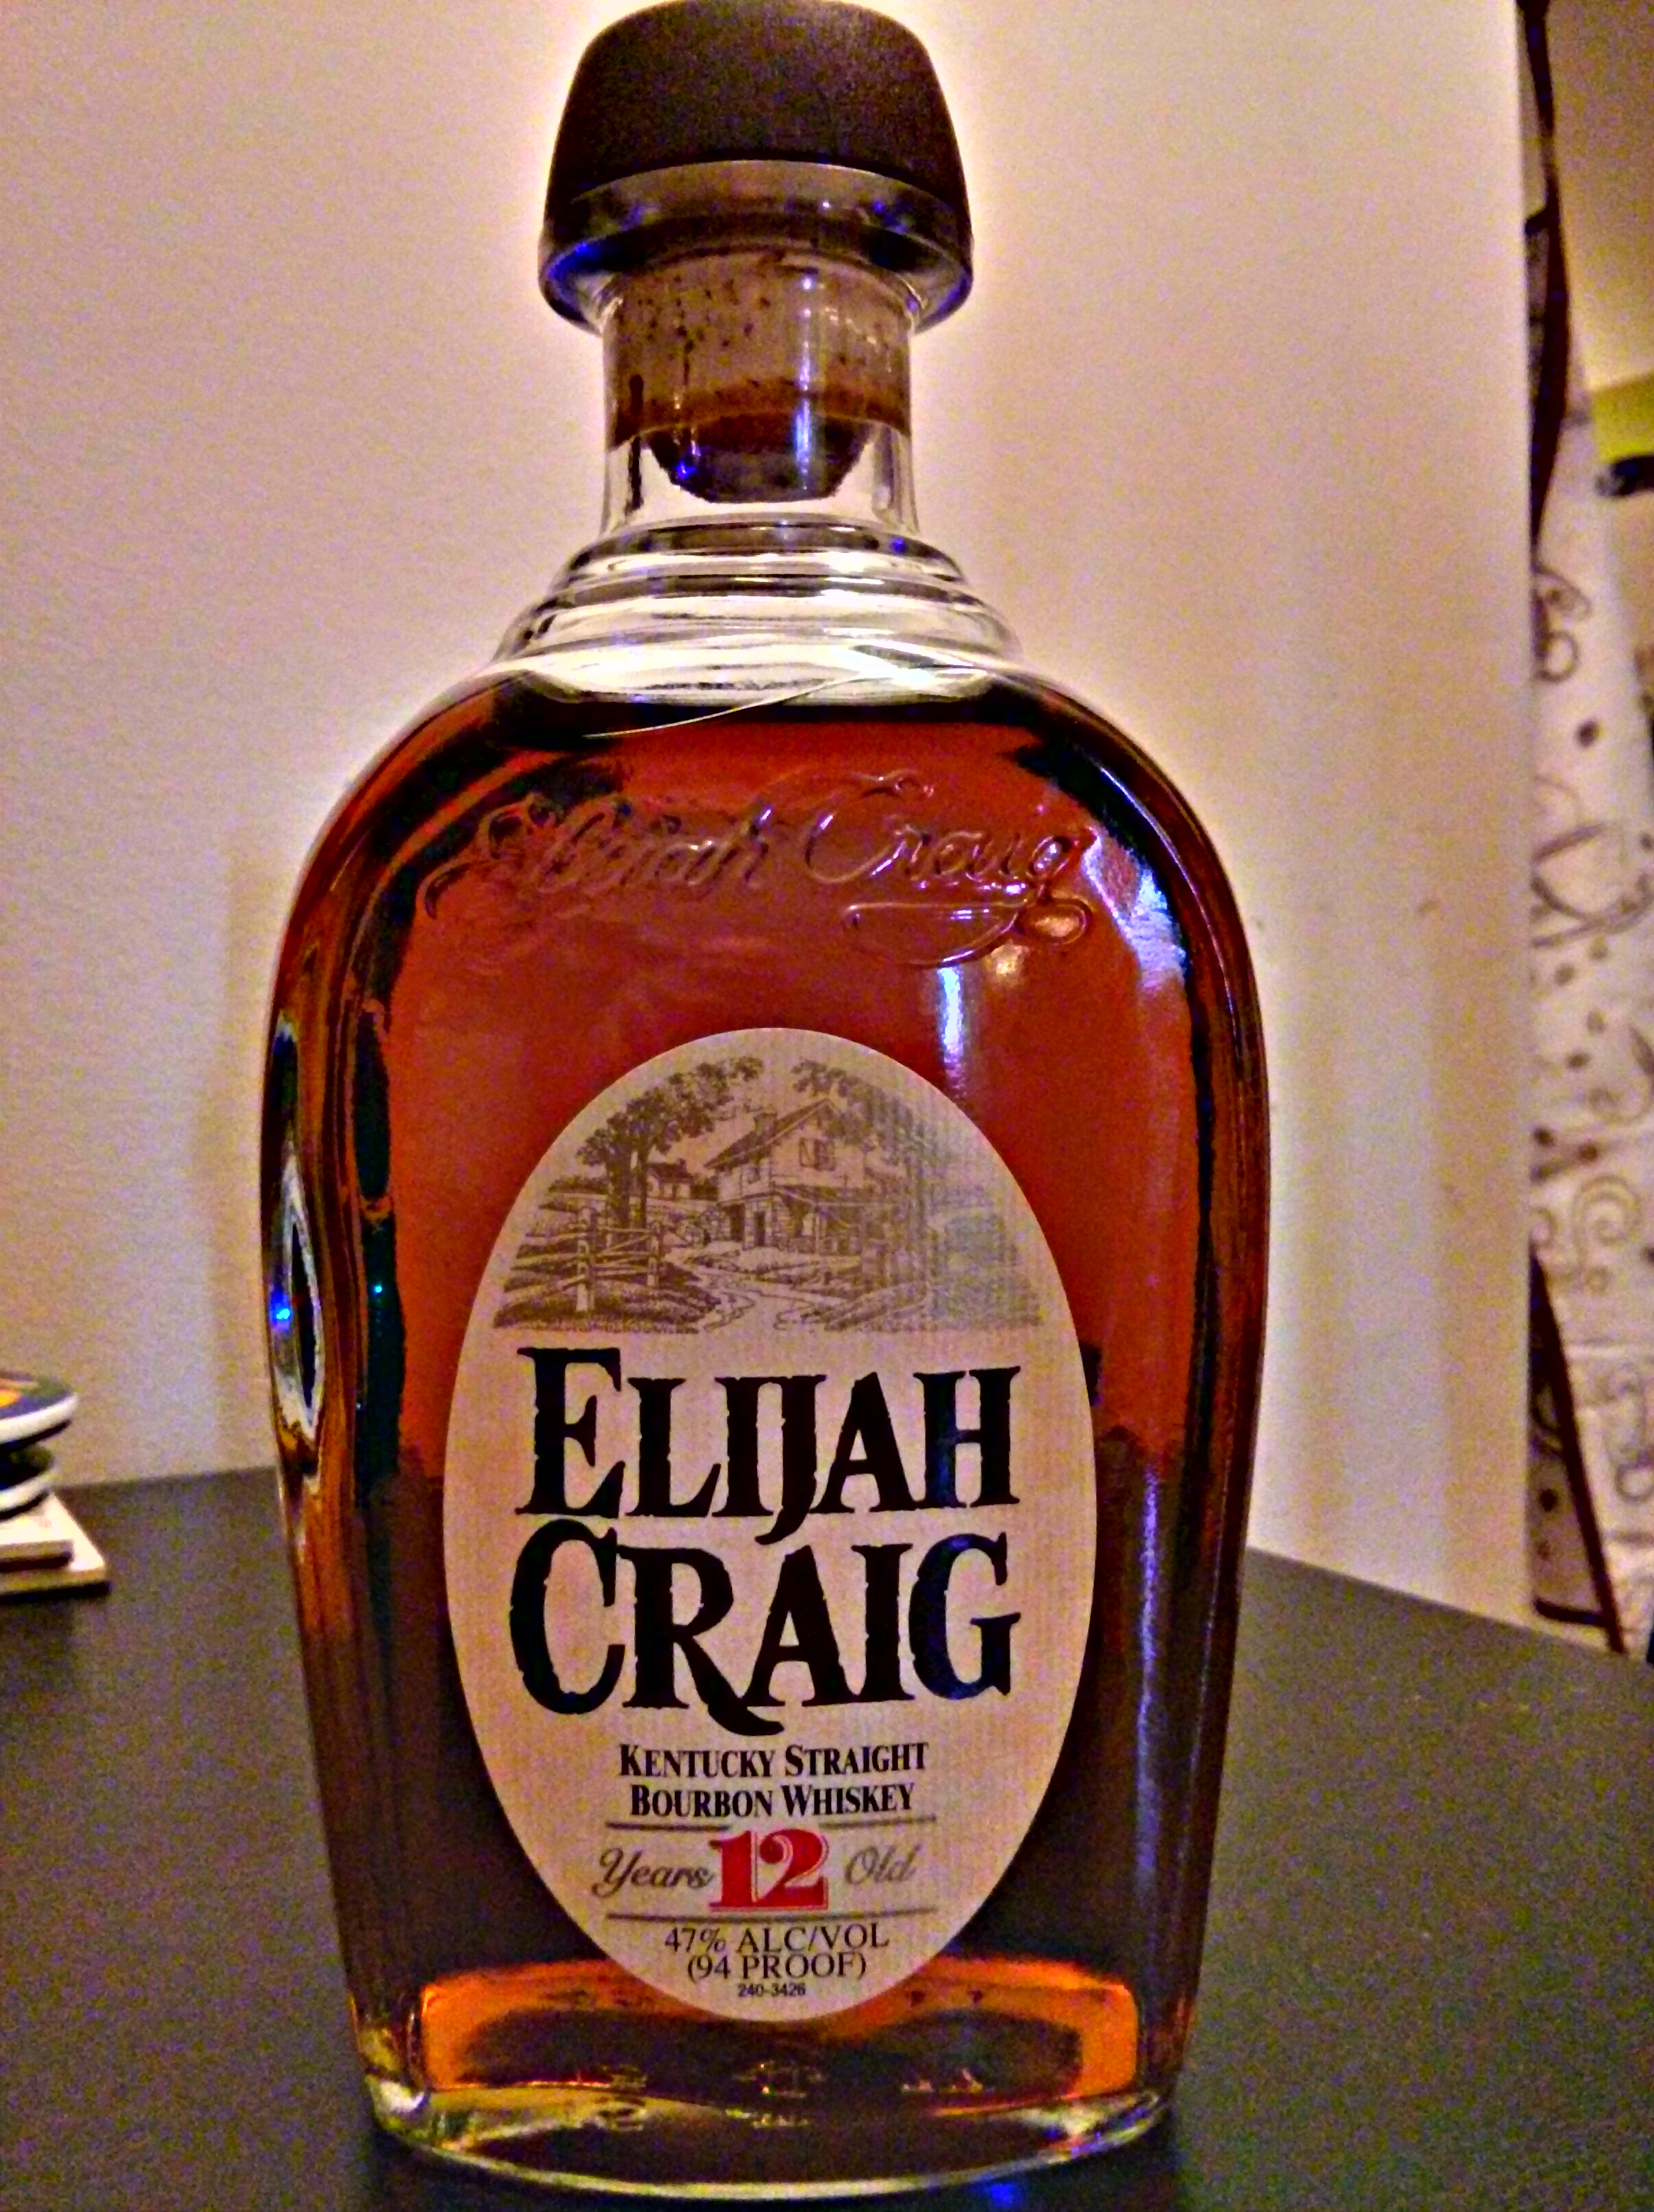 Elijah Craig 12y Kentucky Straight Bourbon Whiskey with Dan & Alex